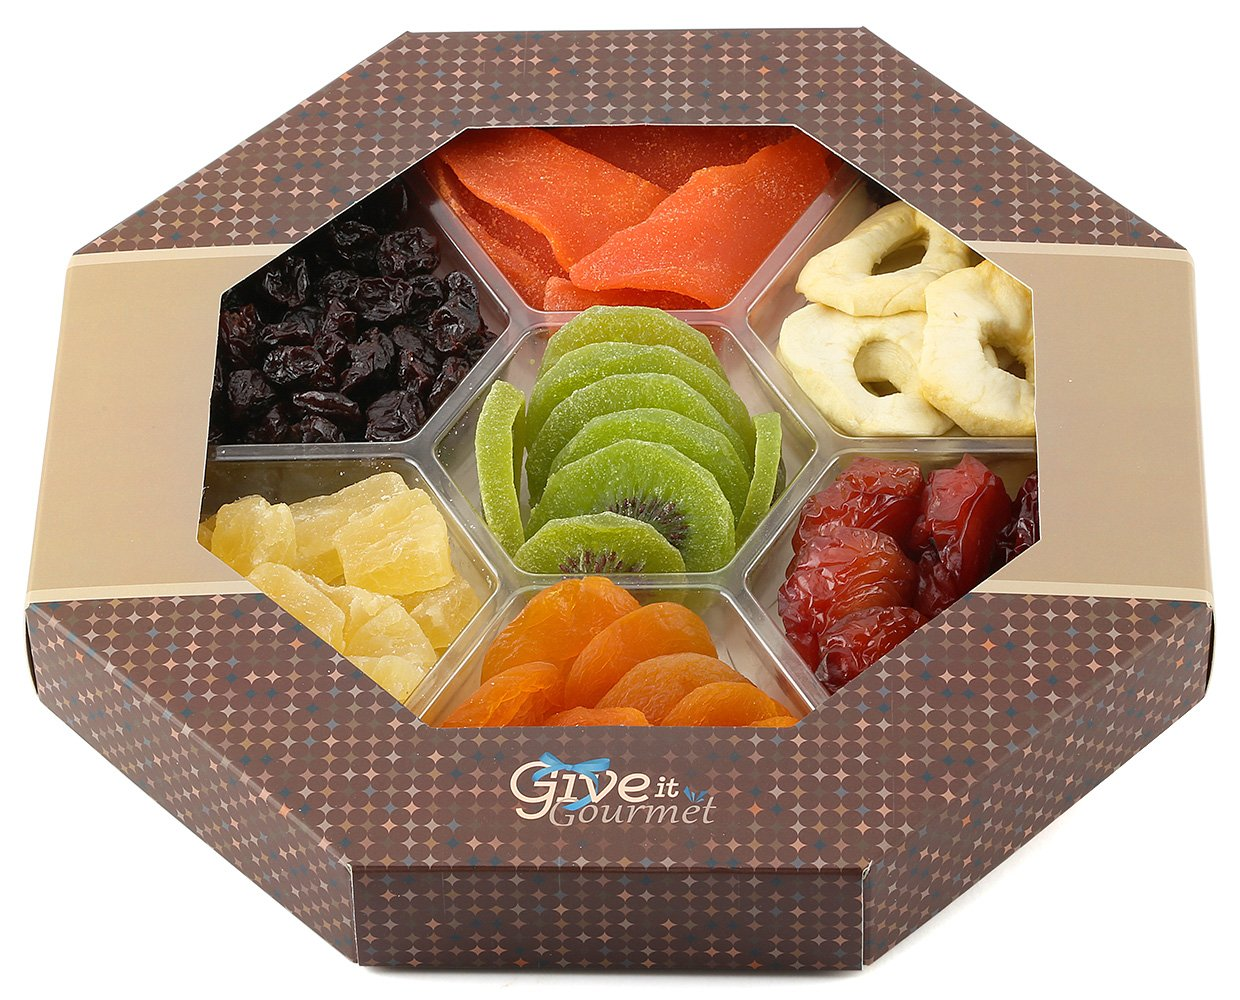 GIVE IT GOURMET, Assortment Dried Fruits Basket (7 Section) - Array of Organic Delicious Dried Fruit for Holidays Snack | Large Healthy Gift Basket